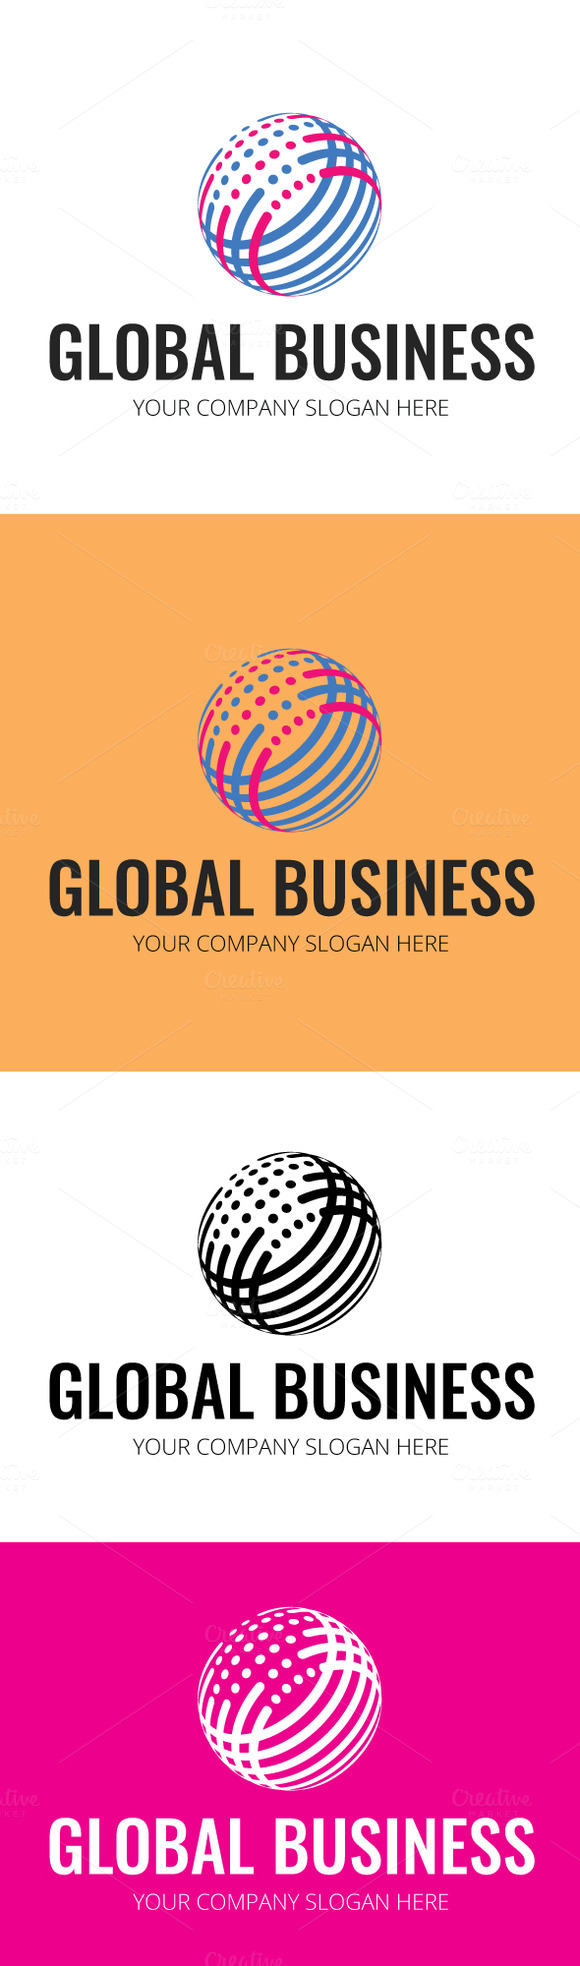 Business design global logo designtube creative design for Global design firm